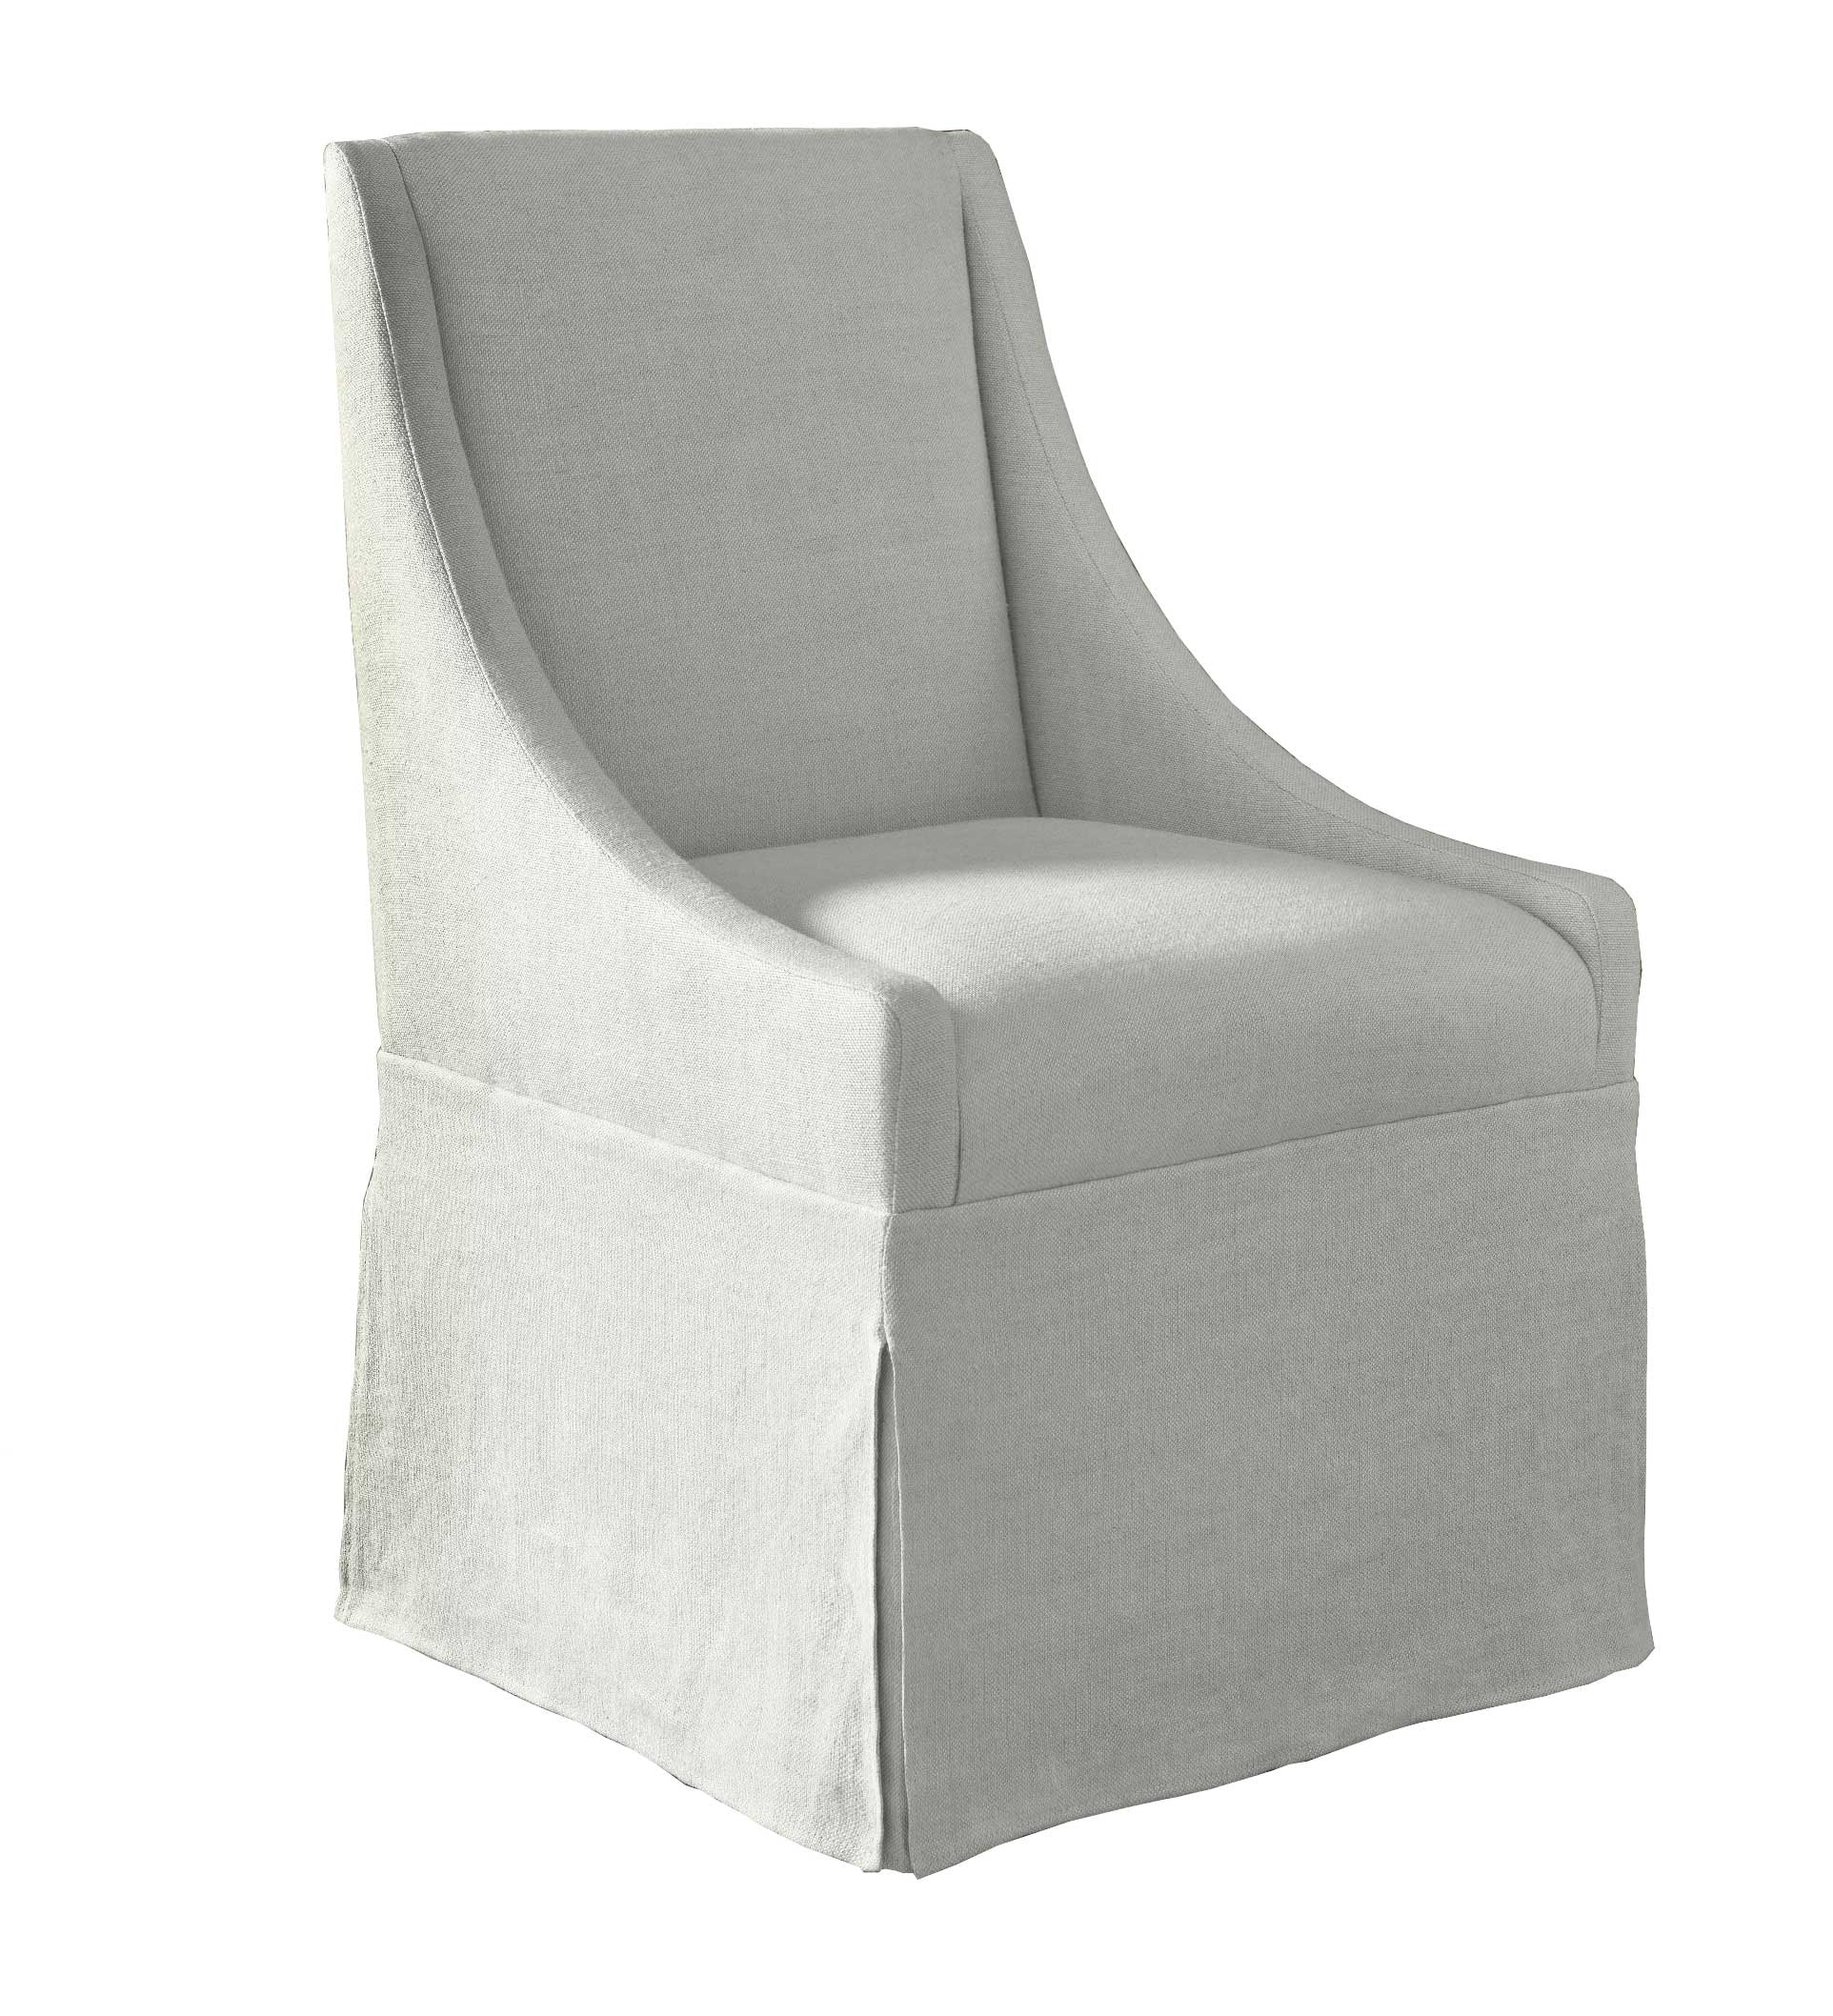 Modern Charcoal Townsend Castered Dining Chair ST:480317